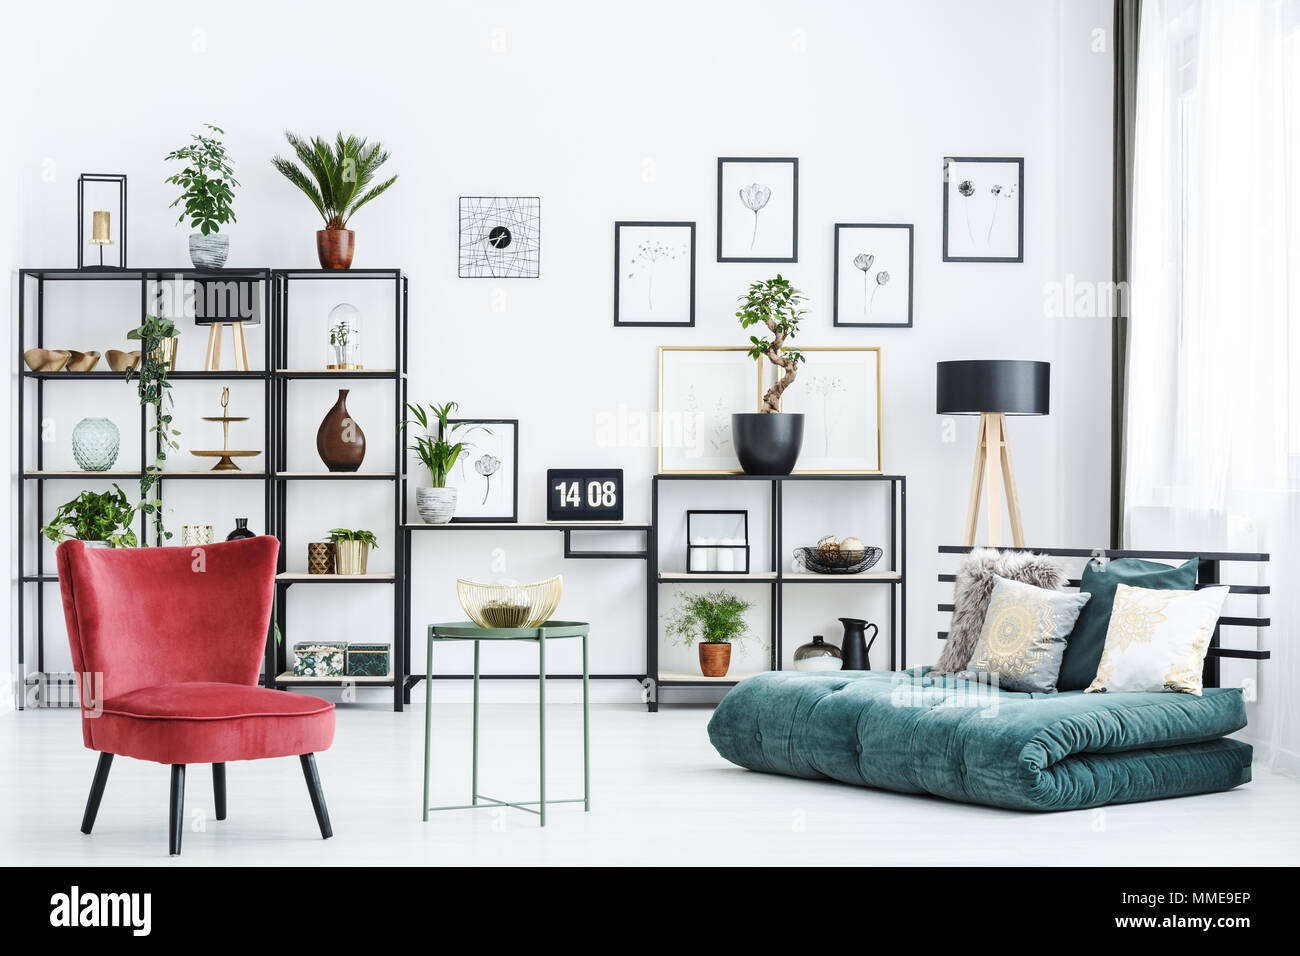 Table between red chair and green futon in home office interior with posters and plants - Stock Image